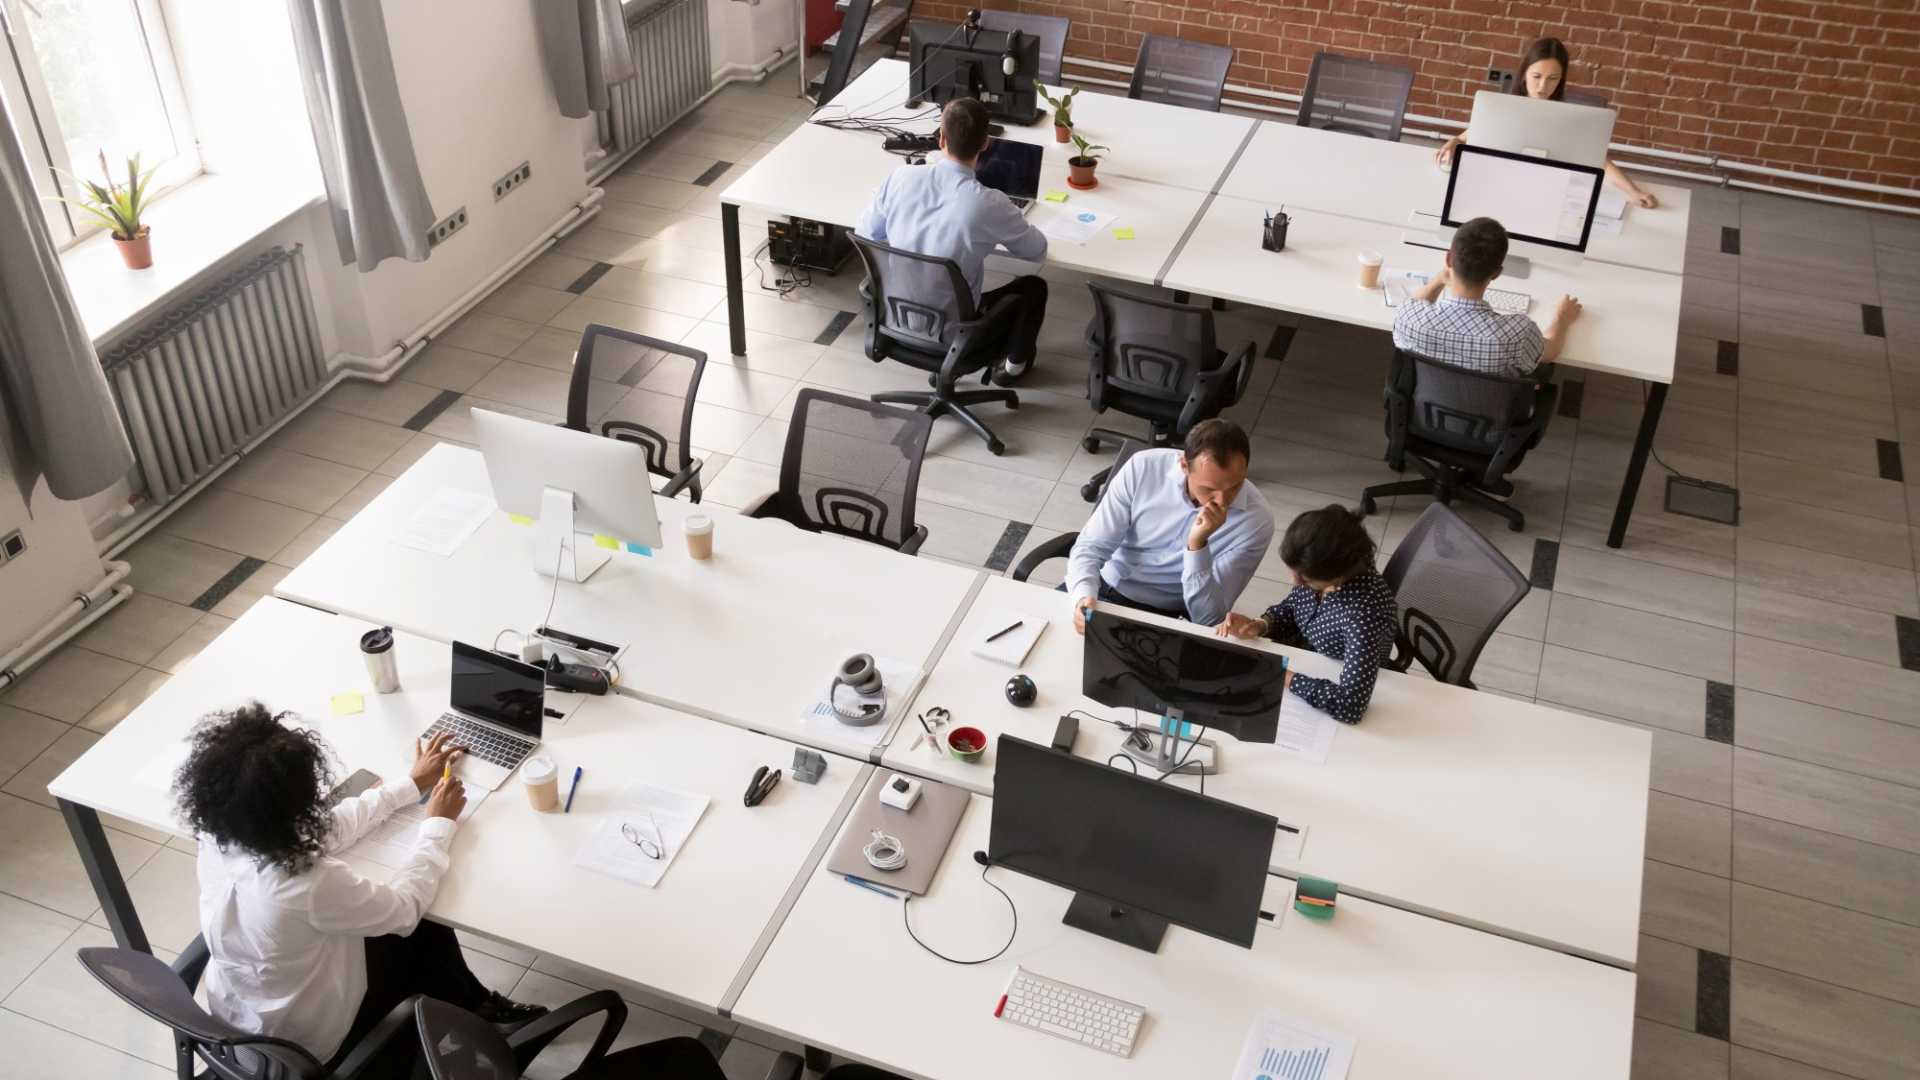 Is This the End for Open Offices? Let's Remember Who Invented Them